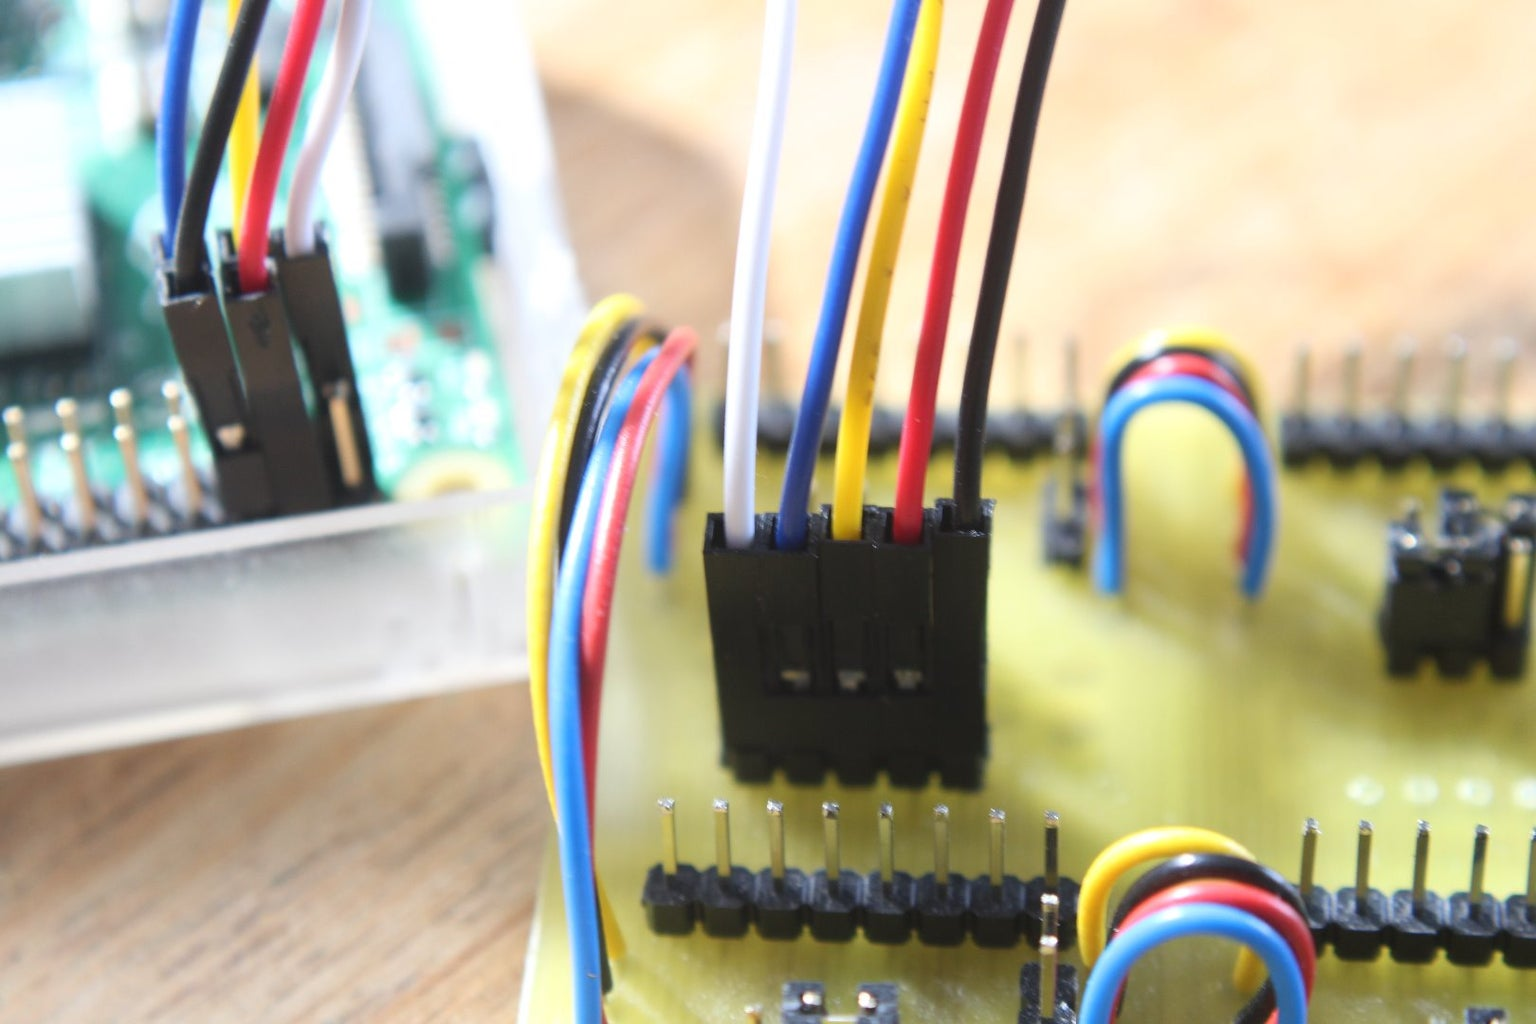 Connecting to Raspberry PI